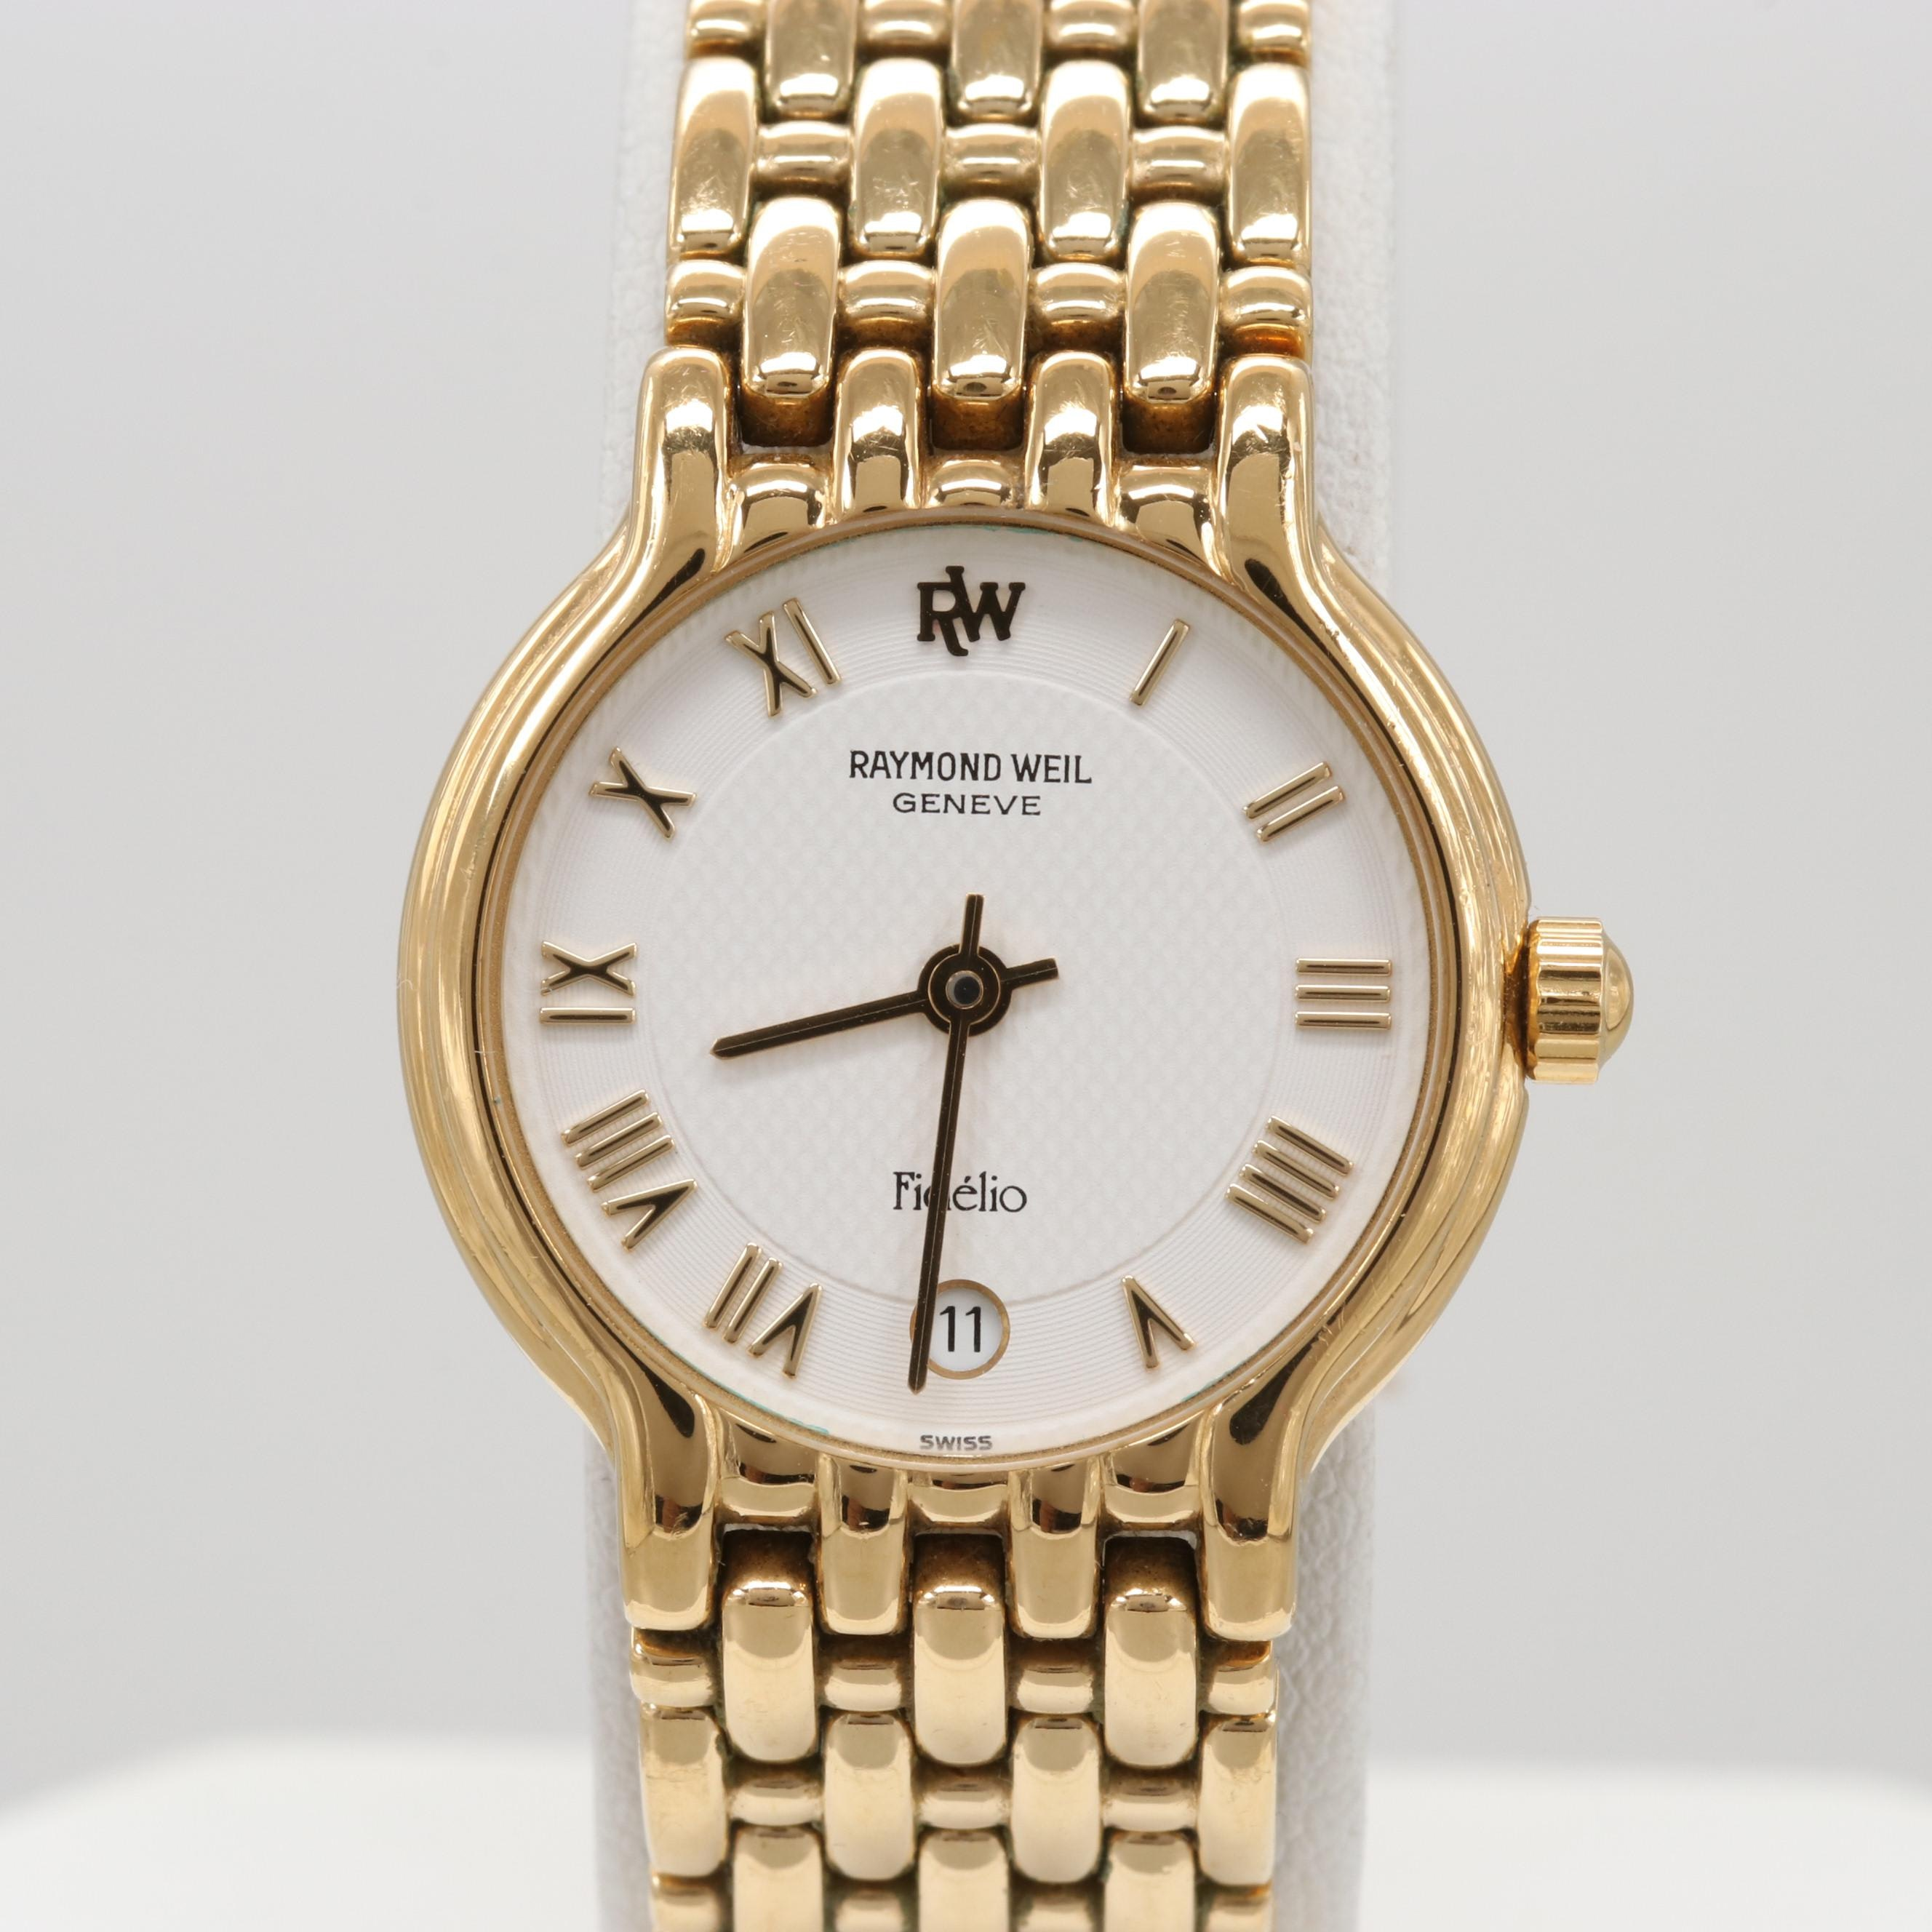 Raymond Weil Fidélio 18K Gold Plated Quartz Wristwatch